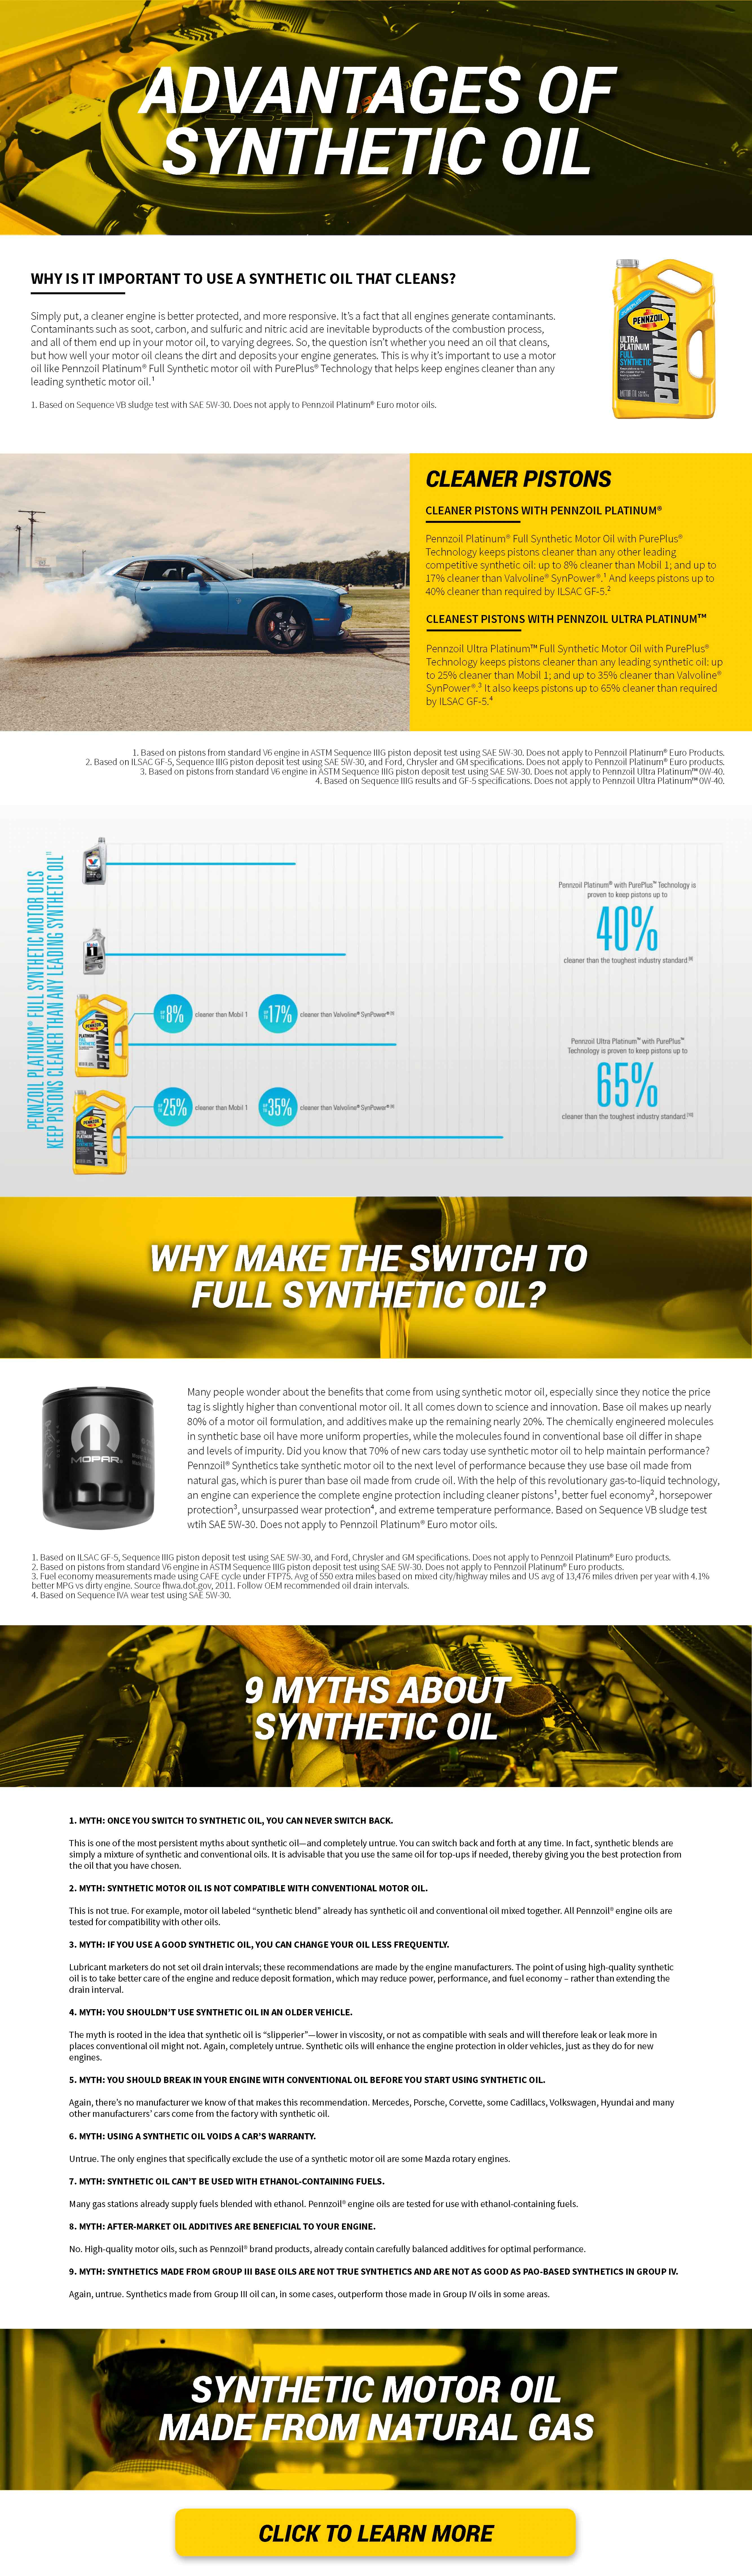 Mopar synthetic motor oil informational flyer describing synthetic motor oil made from matural gas